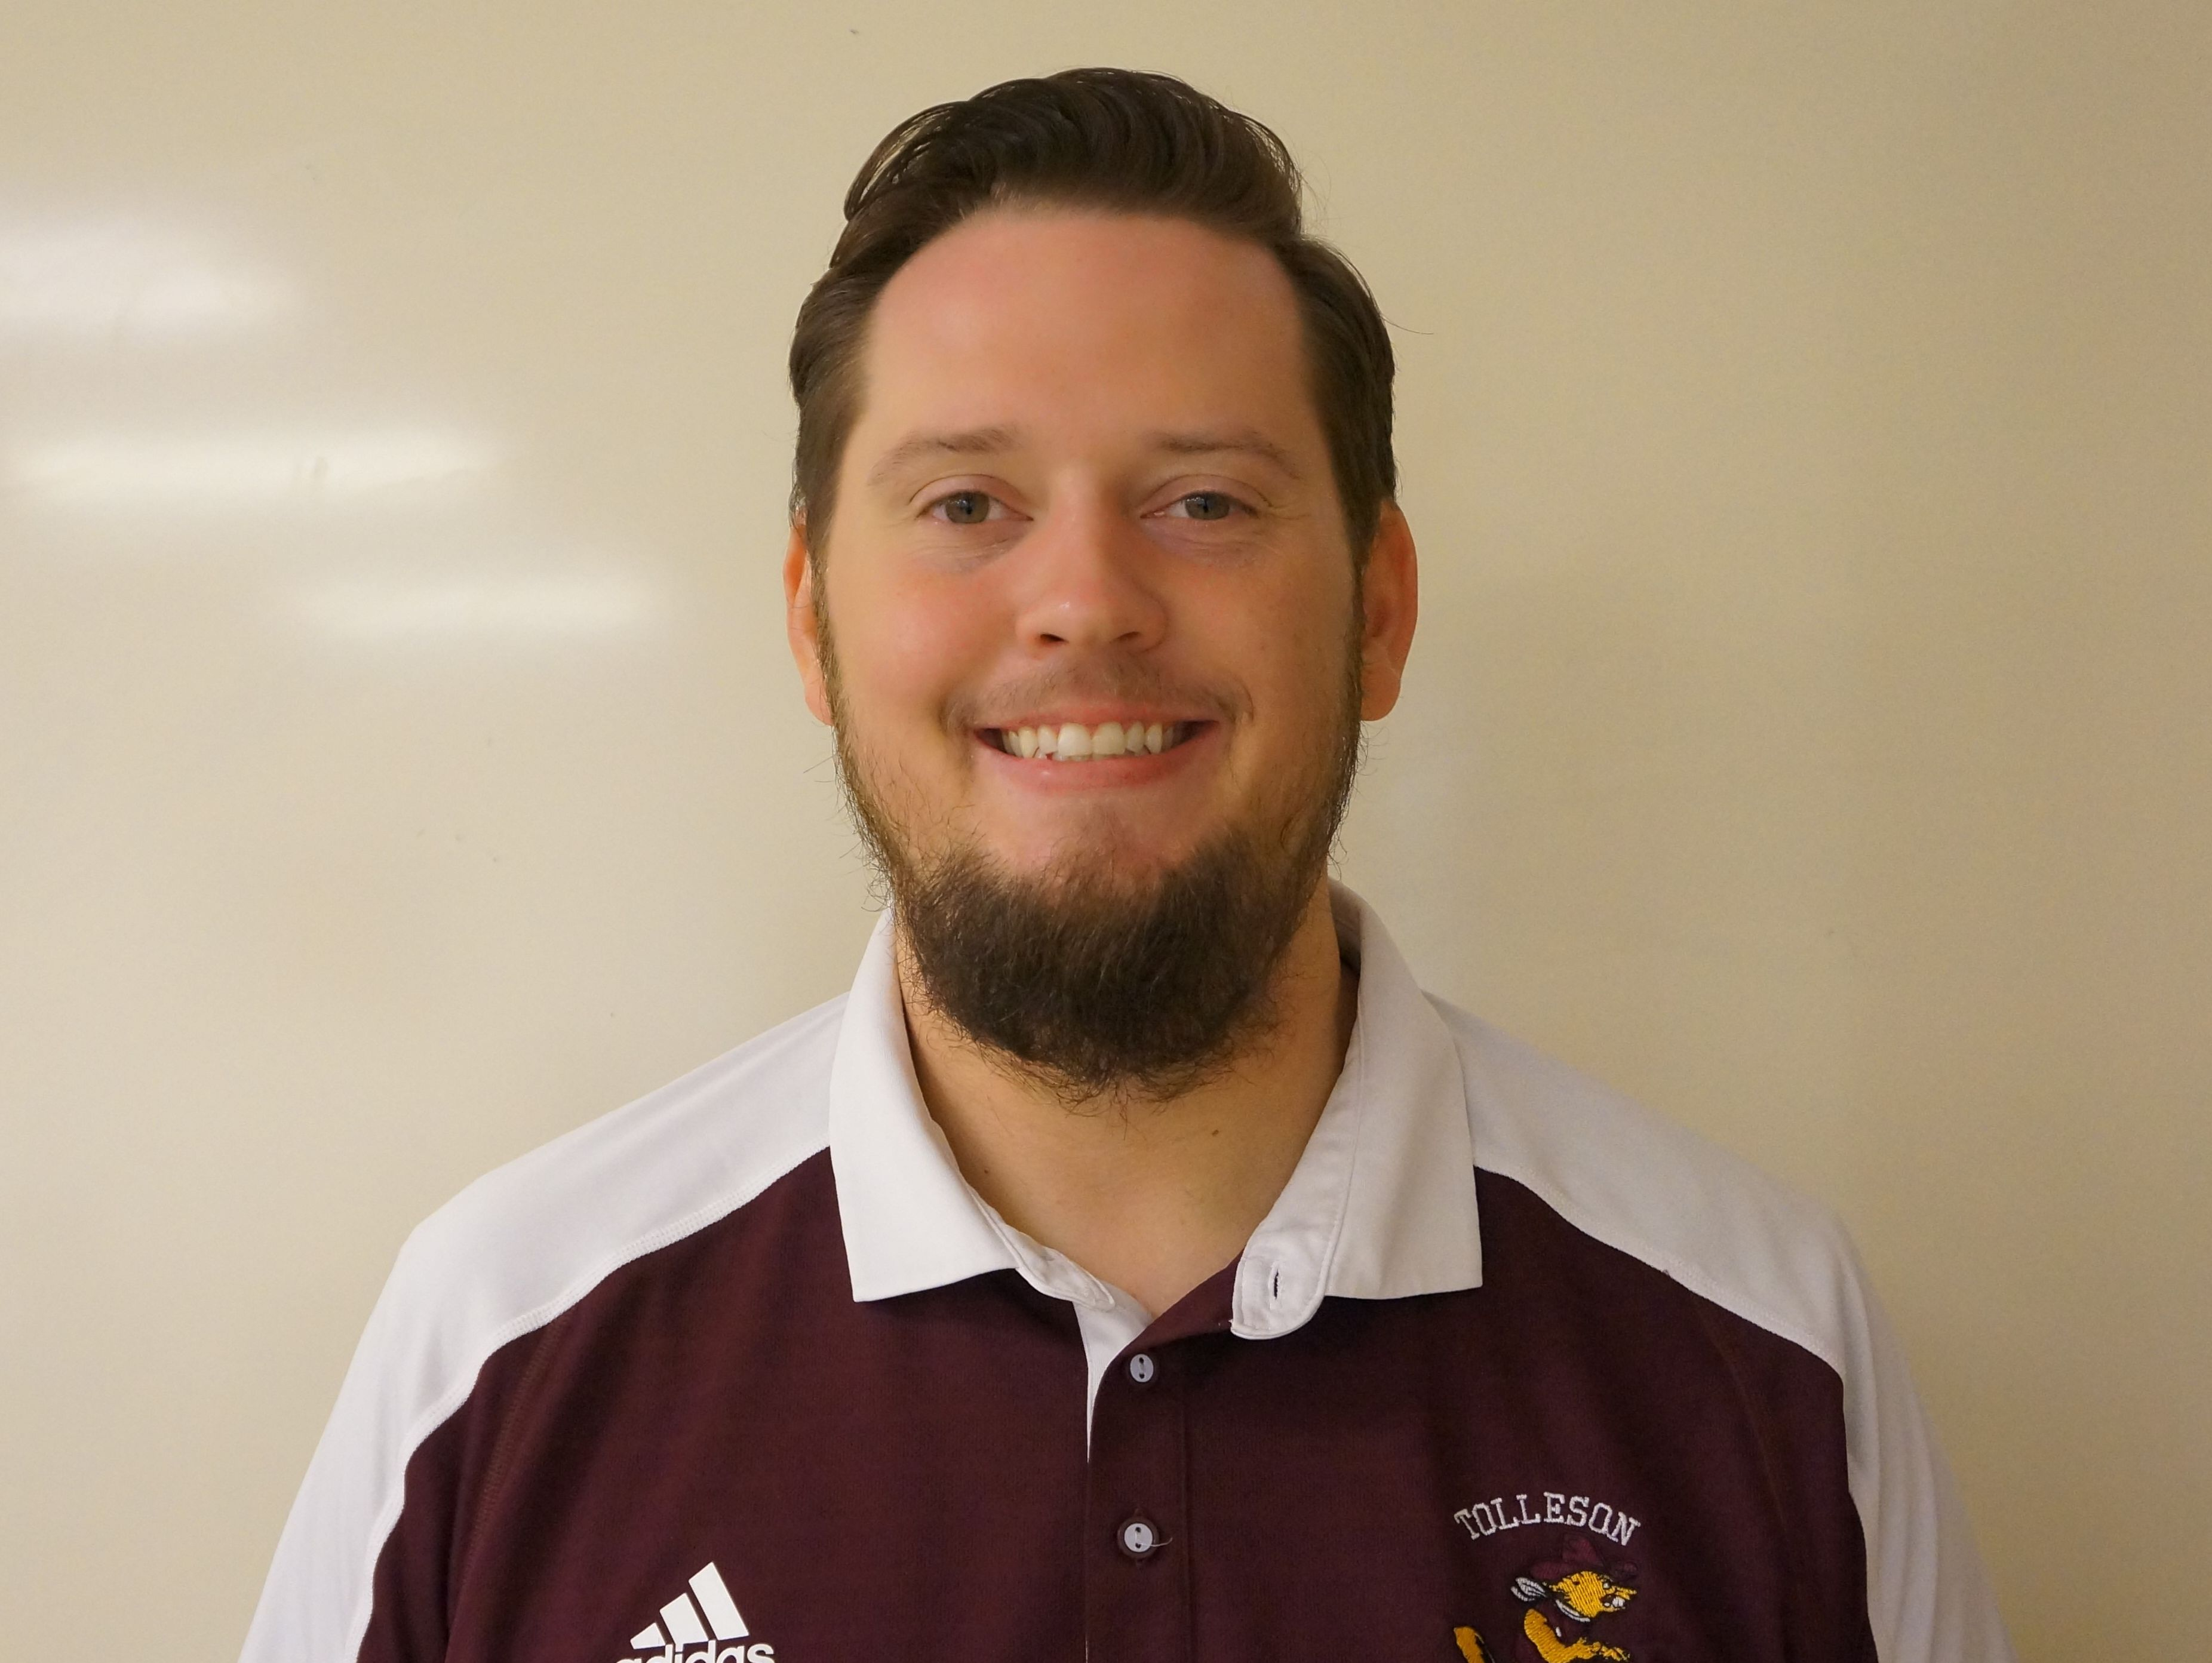 Tolleson boys soccer coach Ben Andronic is the azcentral.com Sports Awards Big Schools Boys Soccer Coach of the Year.